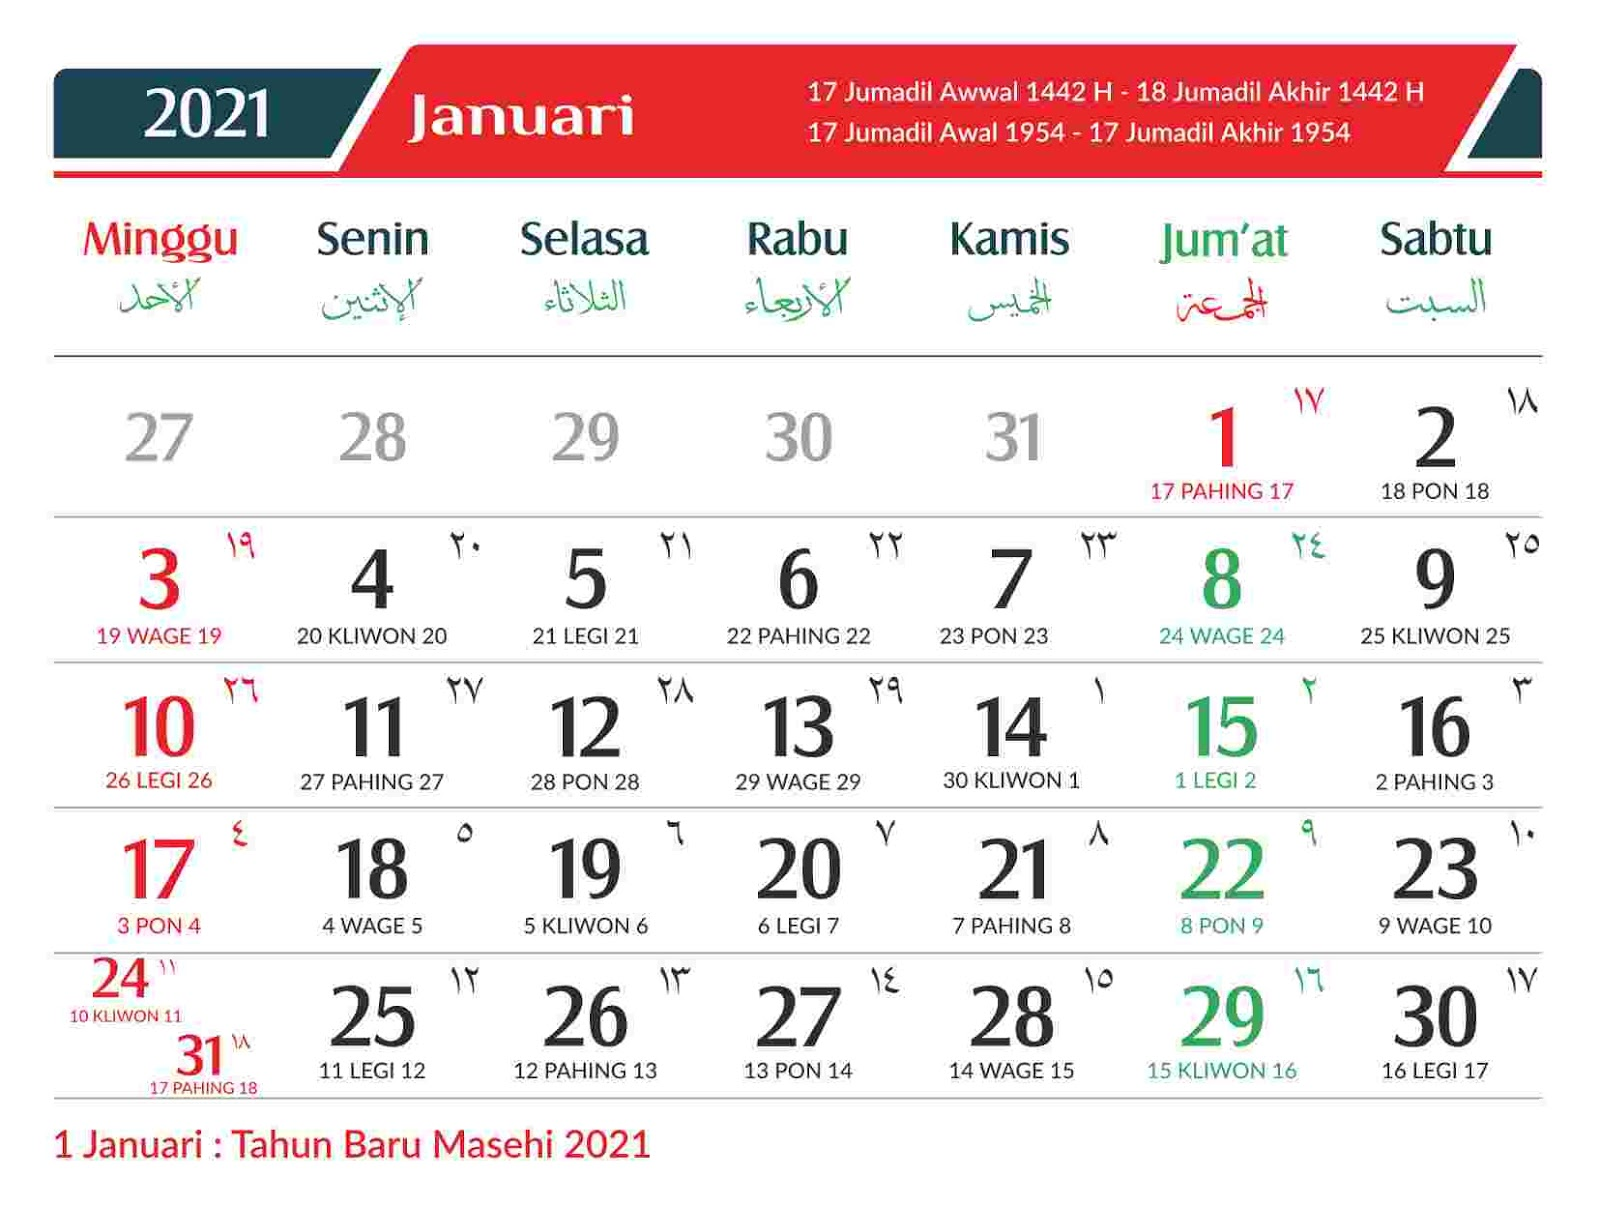 download kalender 2021 gratis format cdr png dowlogo com download kalender 2021 gratis format